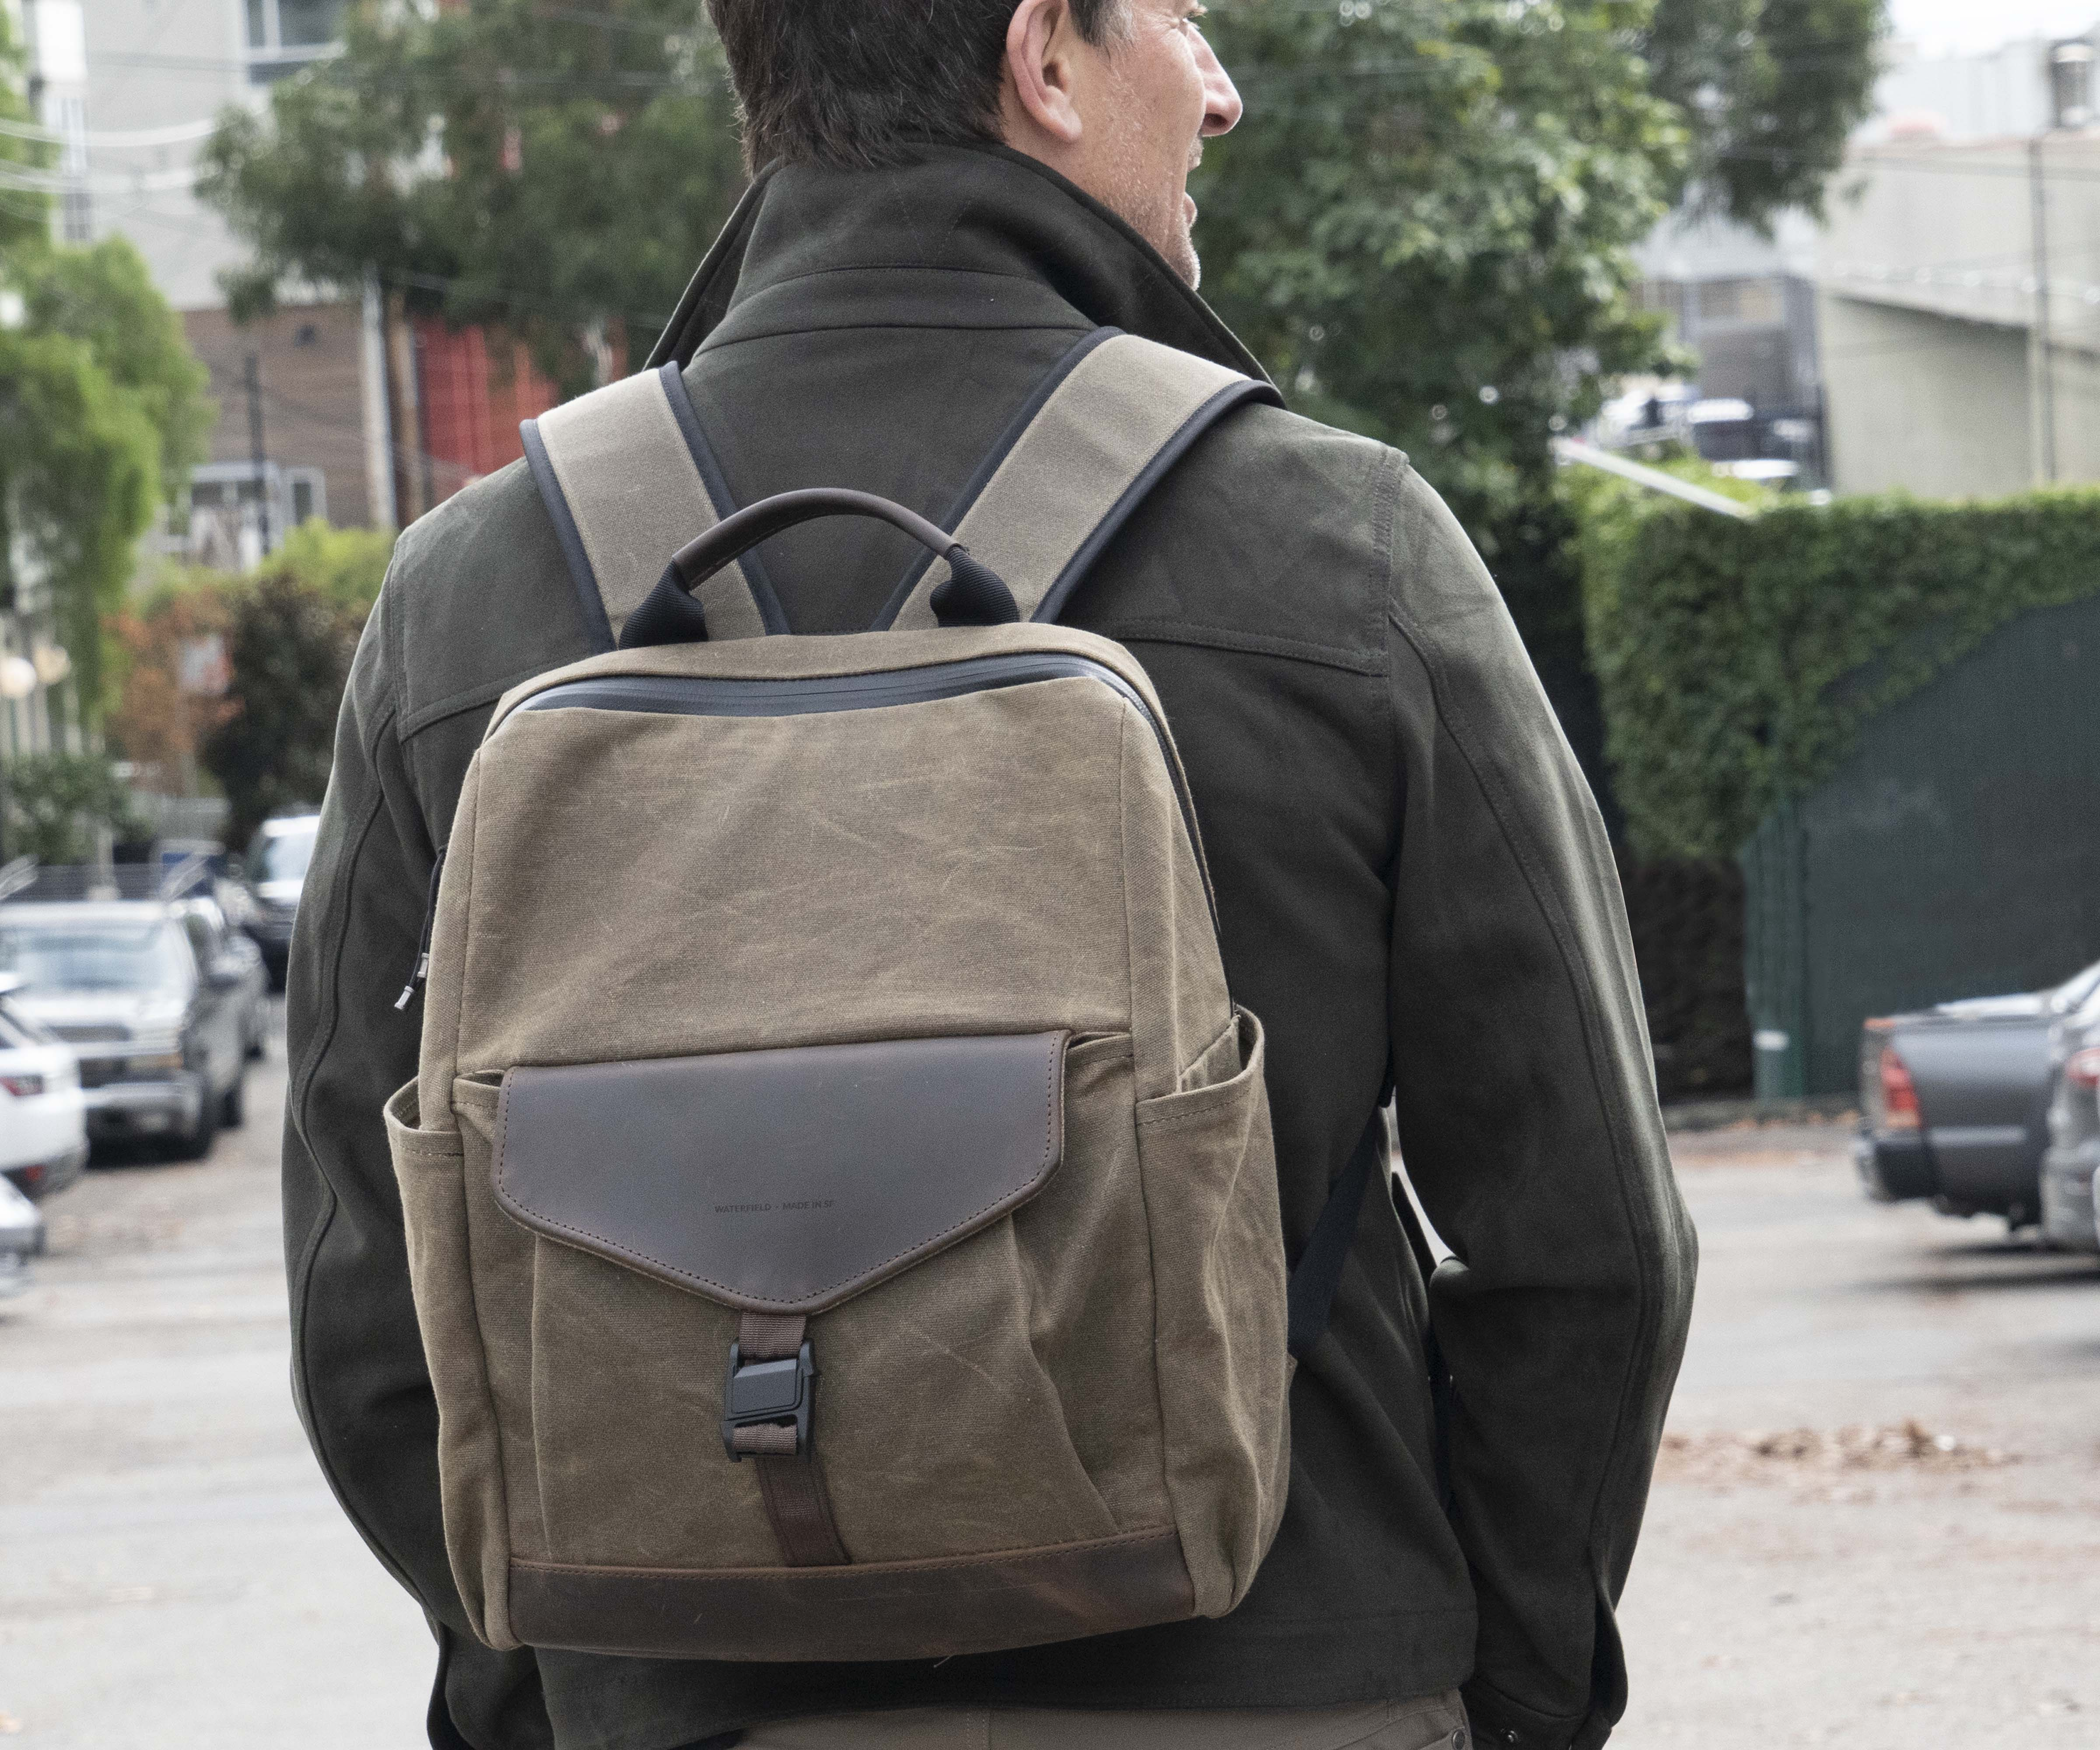 WaterField Pre-Launches Mezzo Backpack with Buckle Choice and Complimentary Pouch